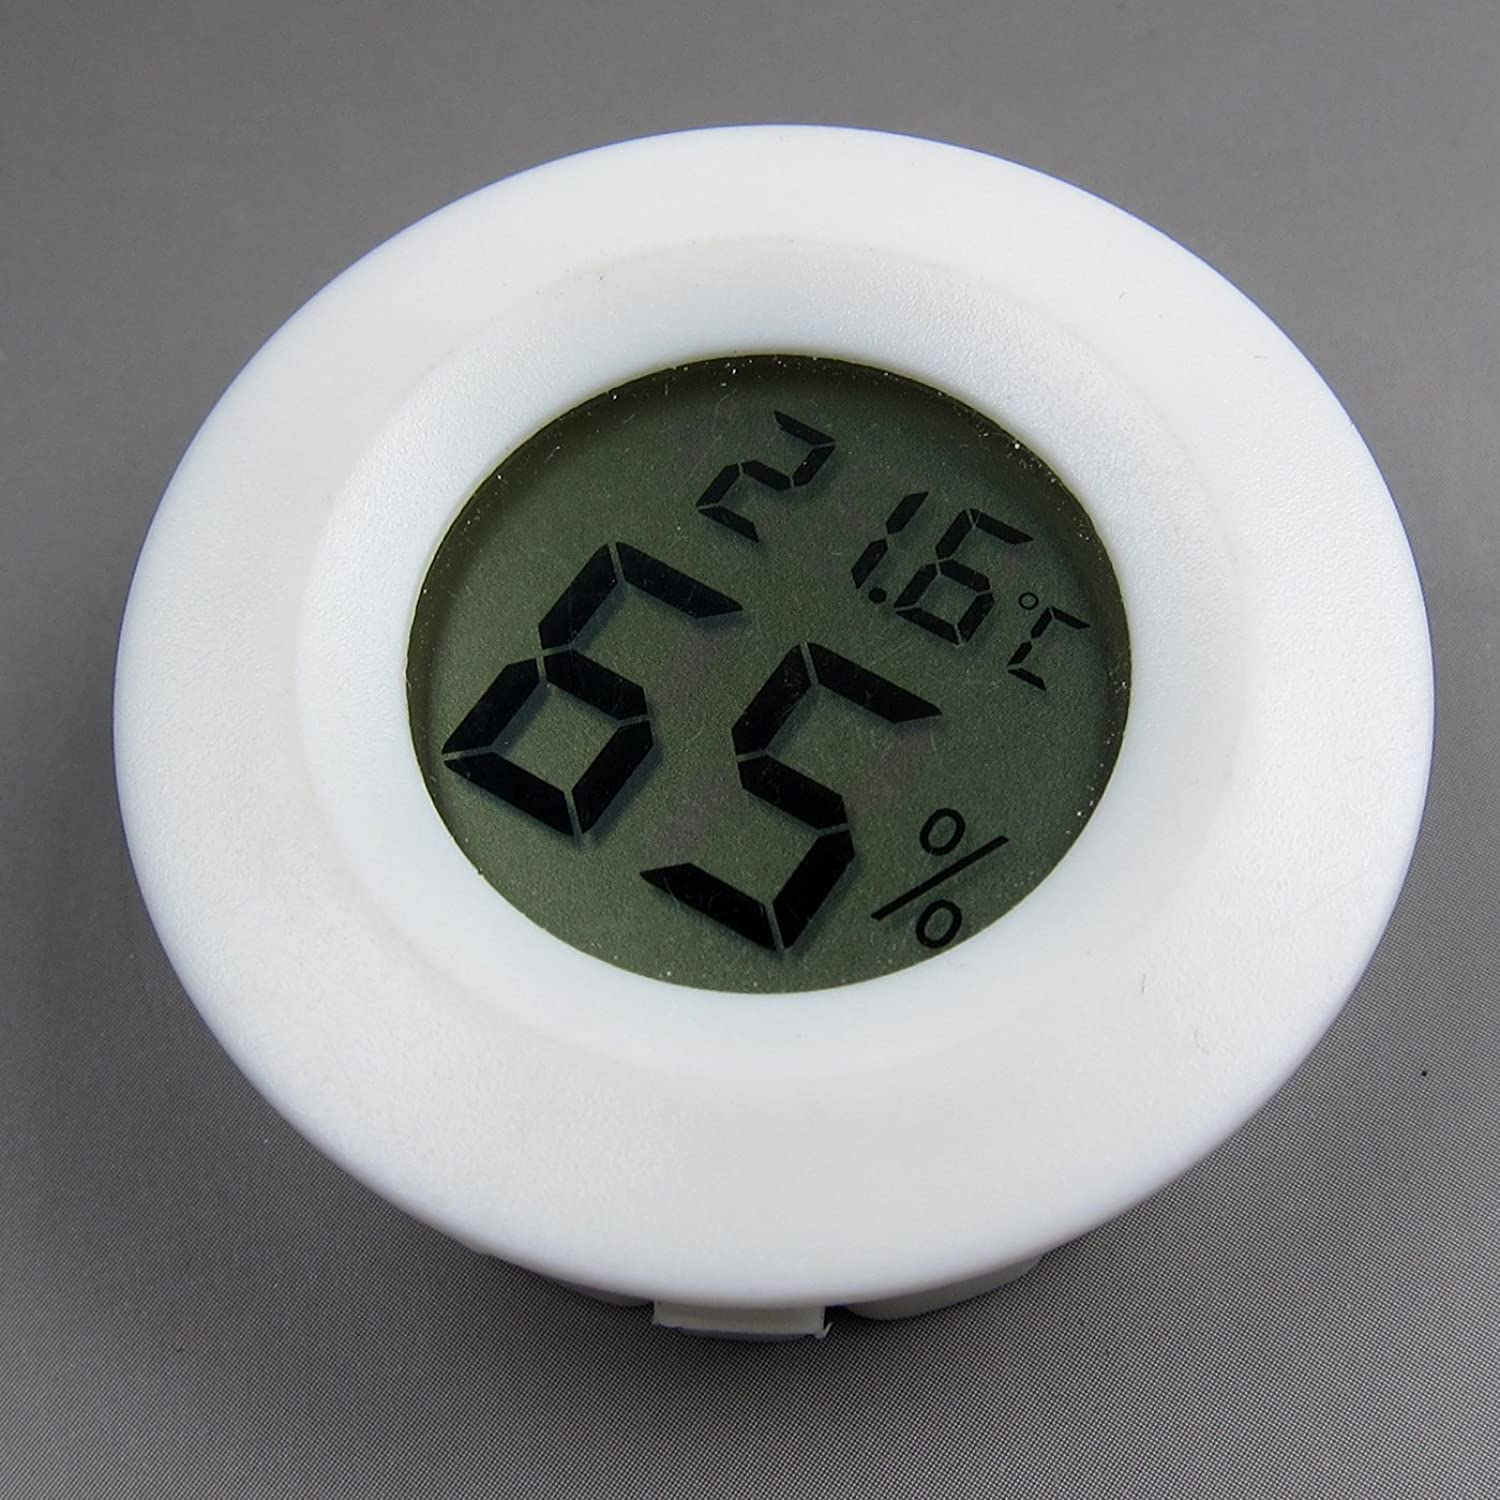 Alfie Pet  Misha Digital Thermometer and Hygrometer  color  White